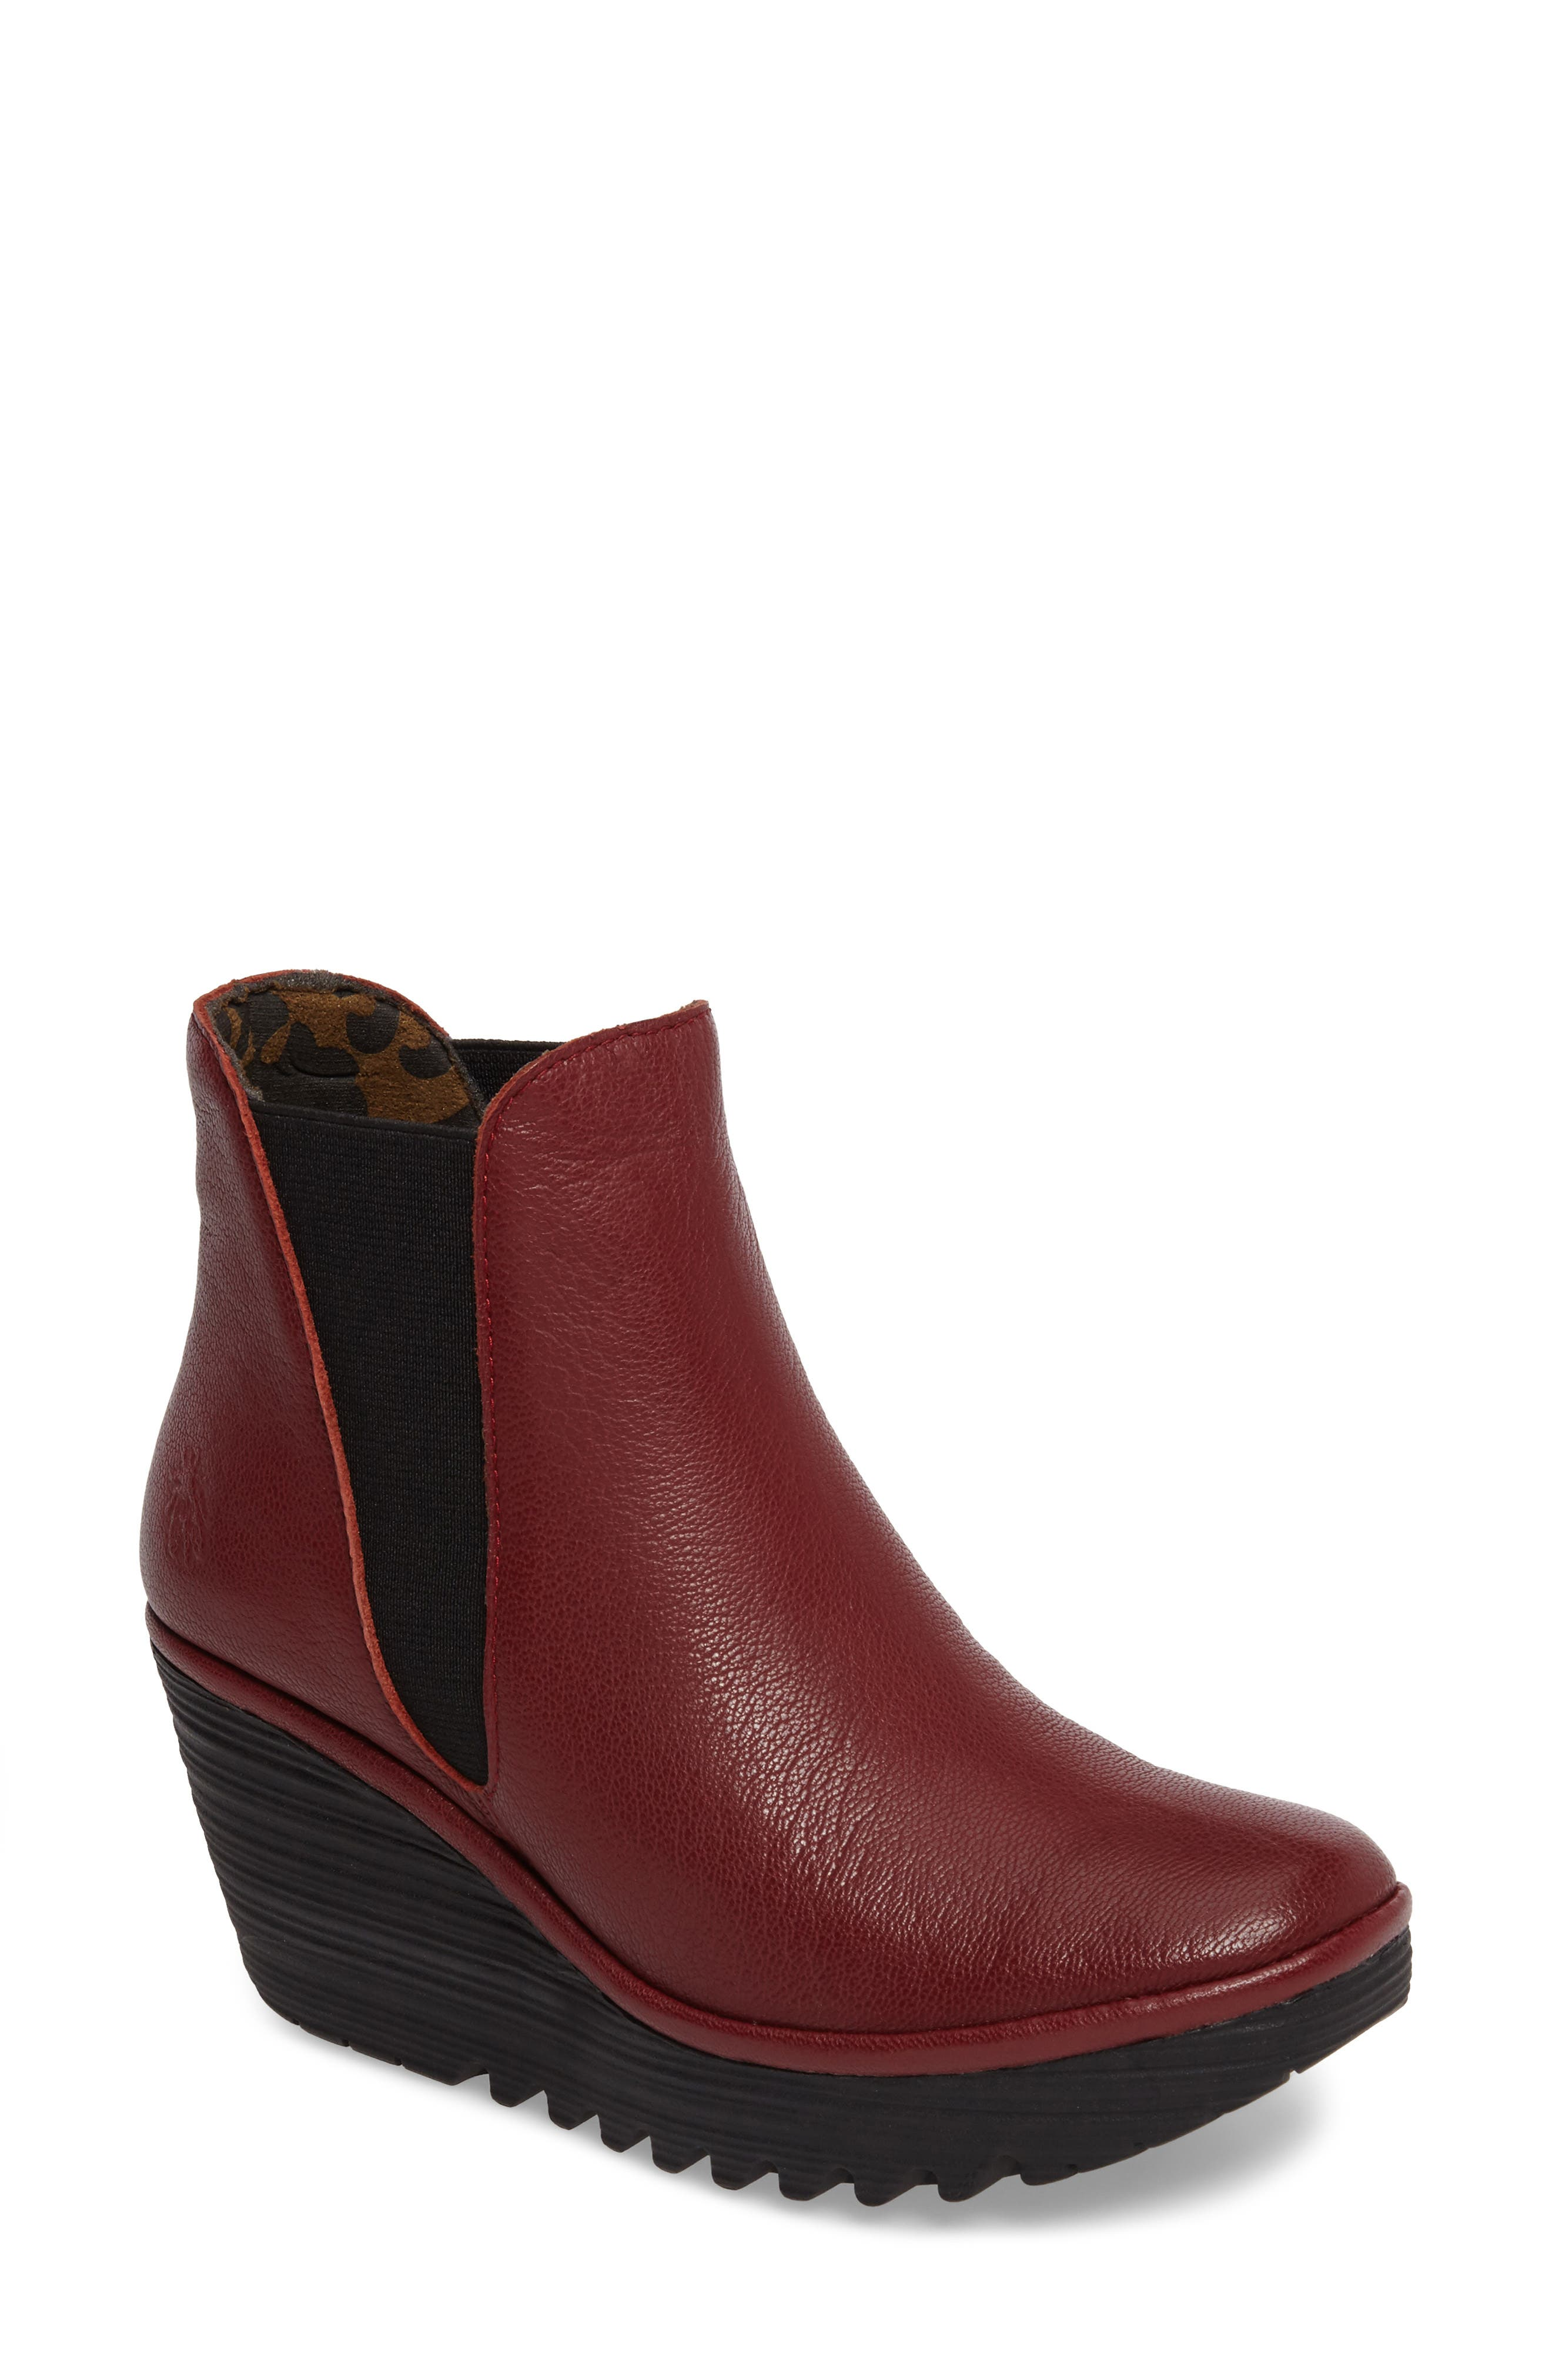 Yoss Wedge Bootie,                         Main,                         color, Cordoba Red Leather